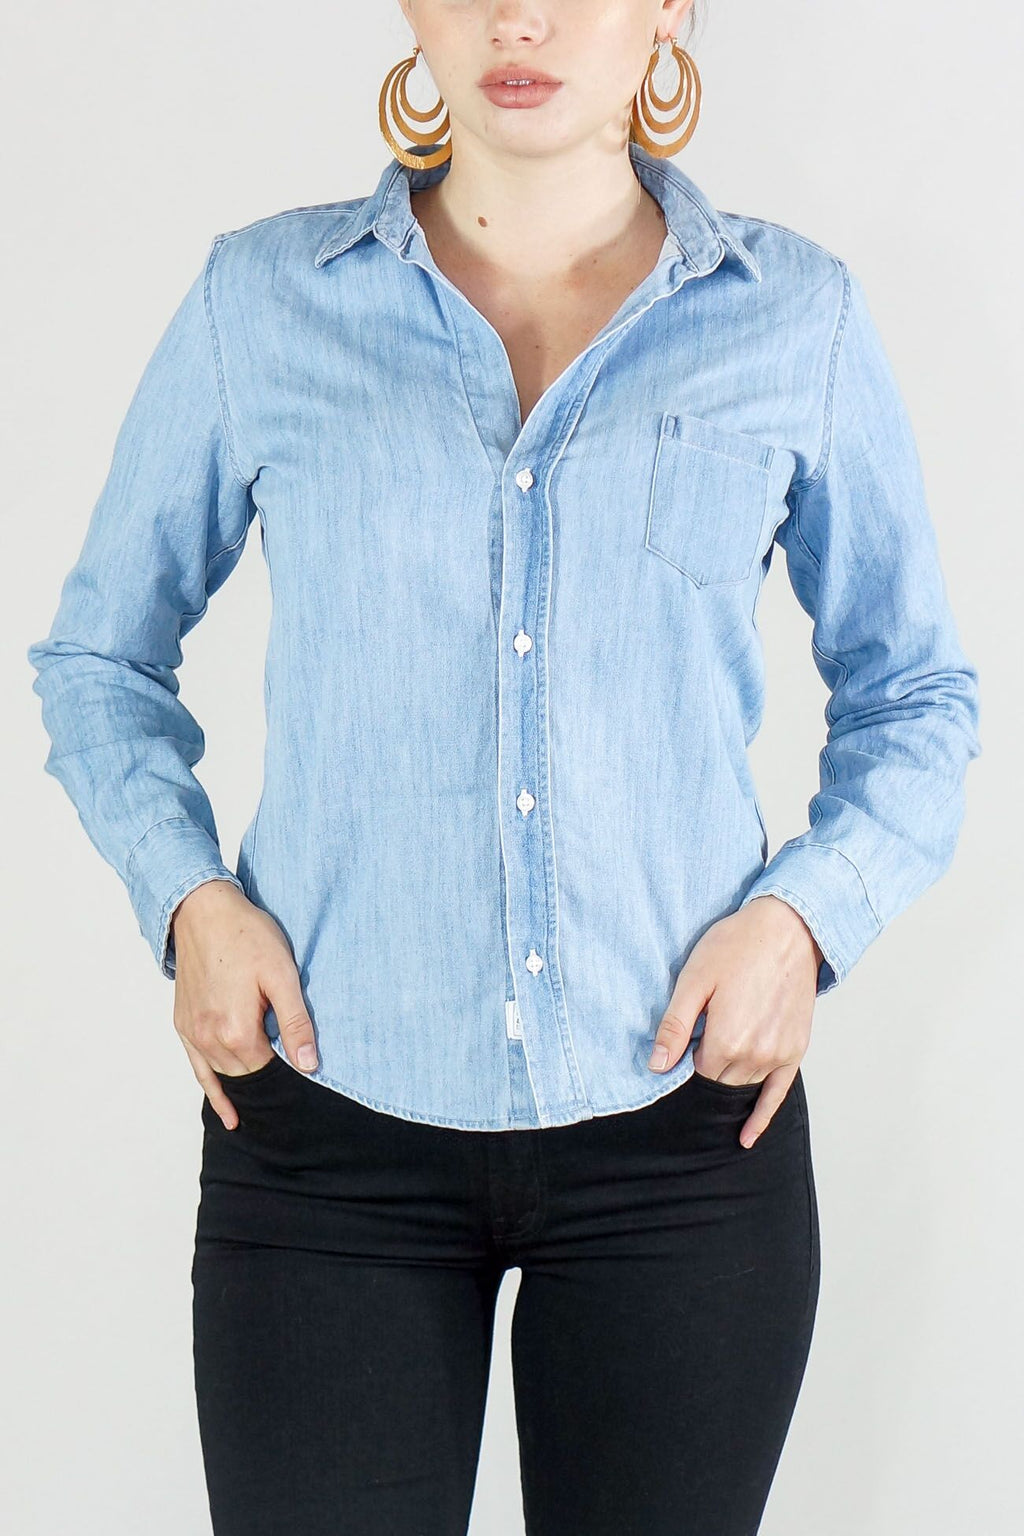 Frank and Eileen Denim Classic Blue Wash Button Up